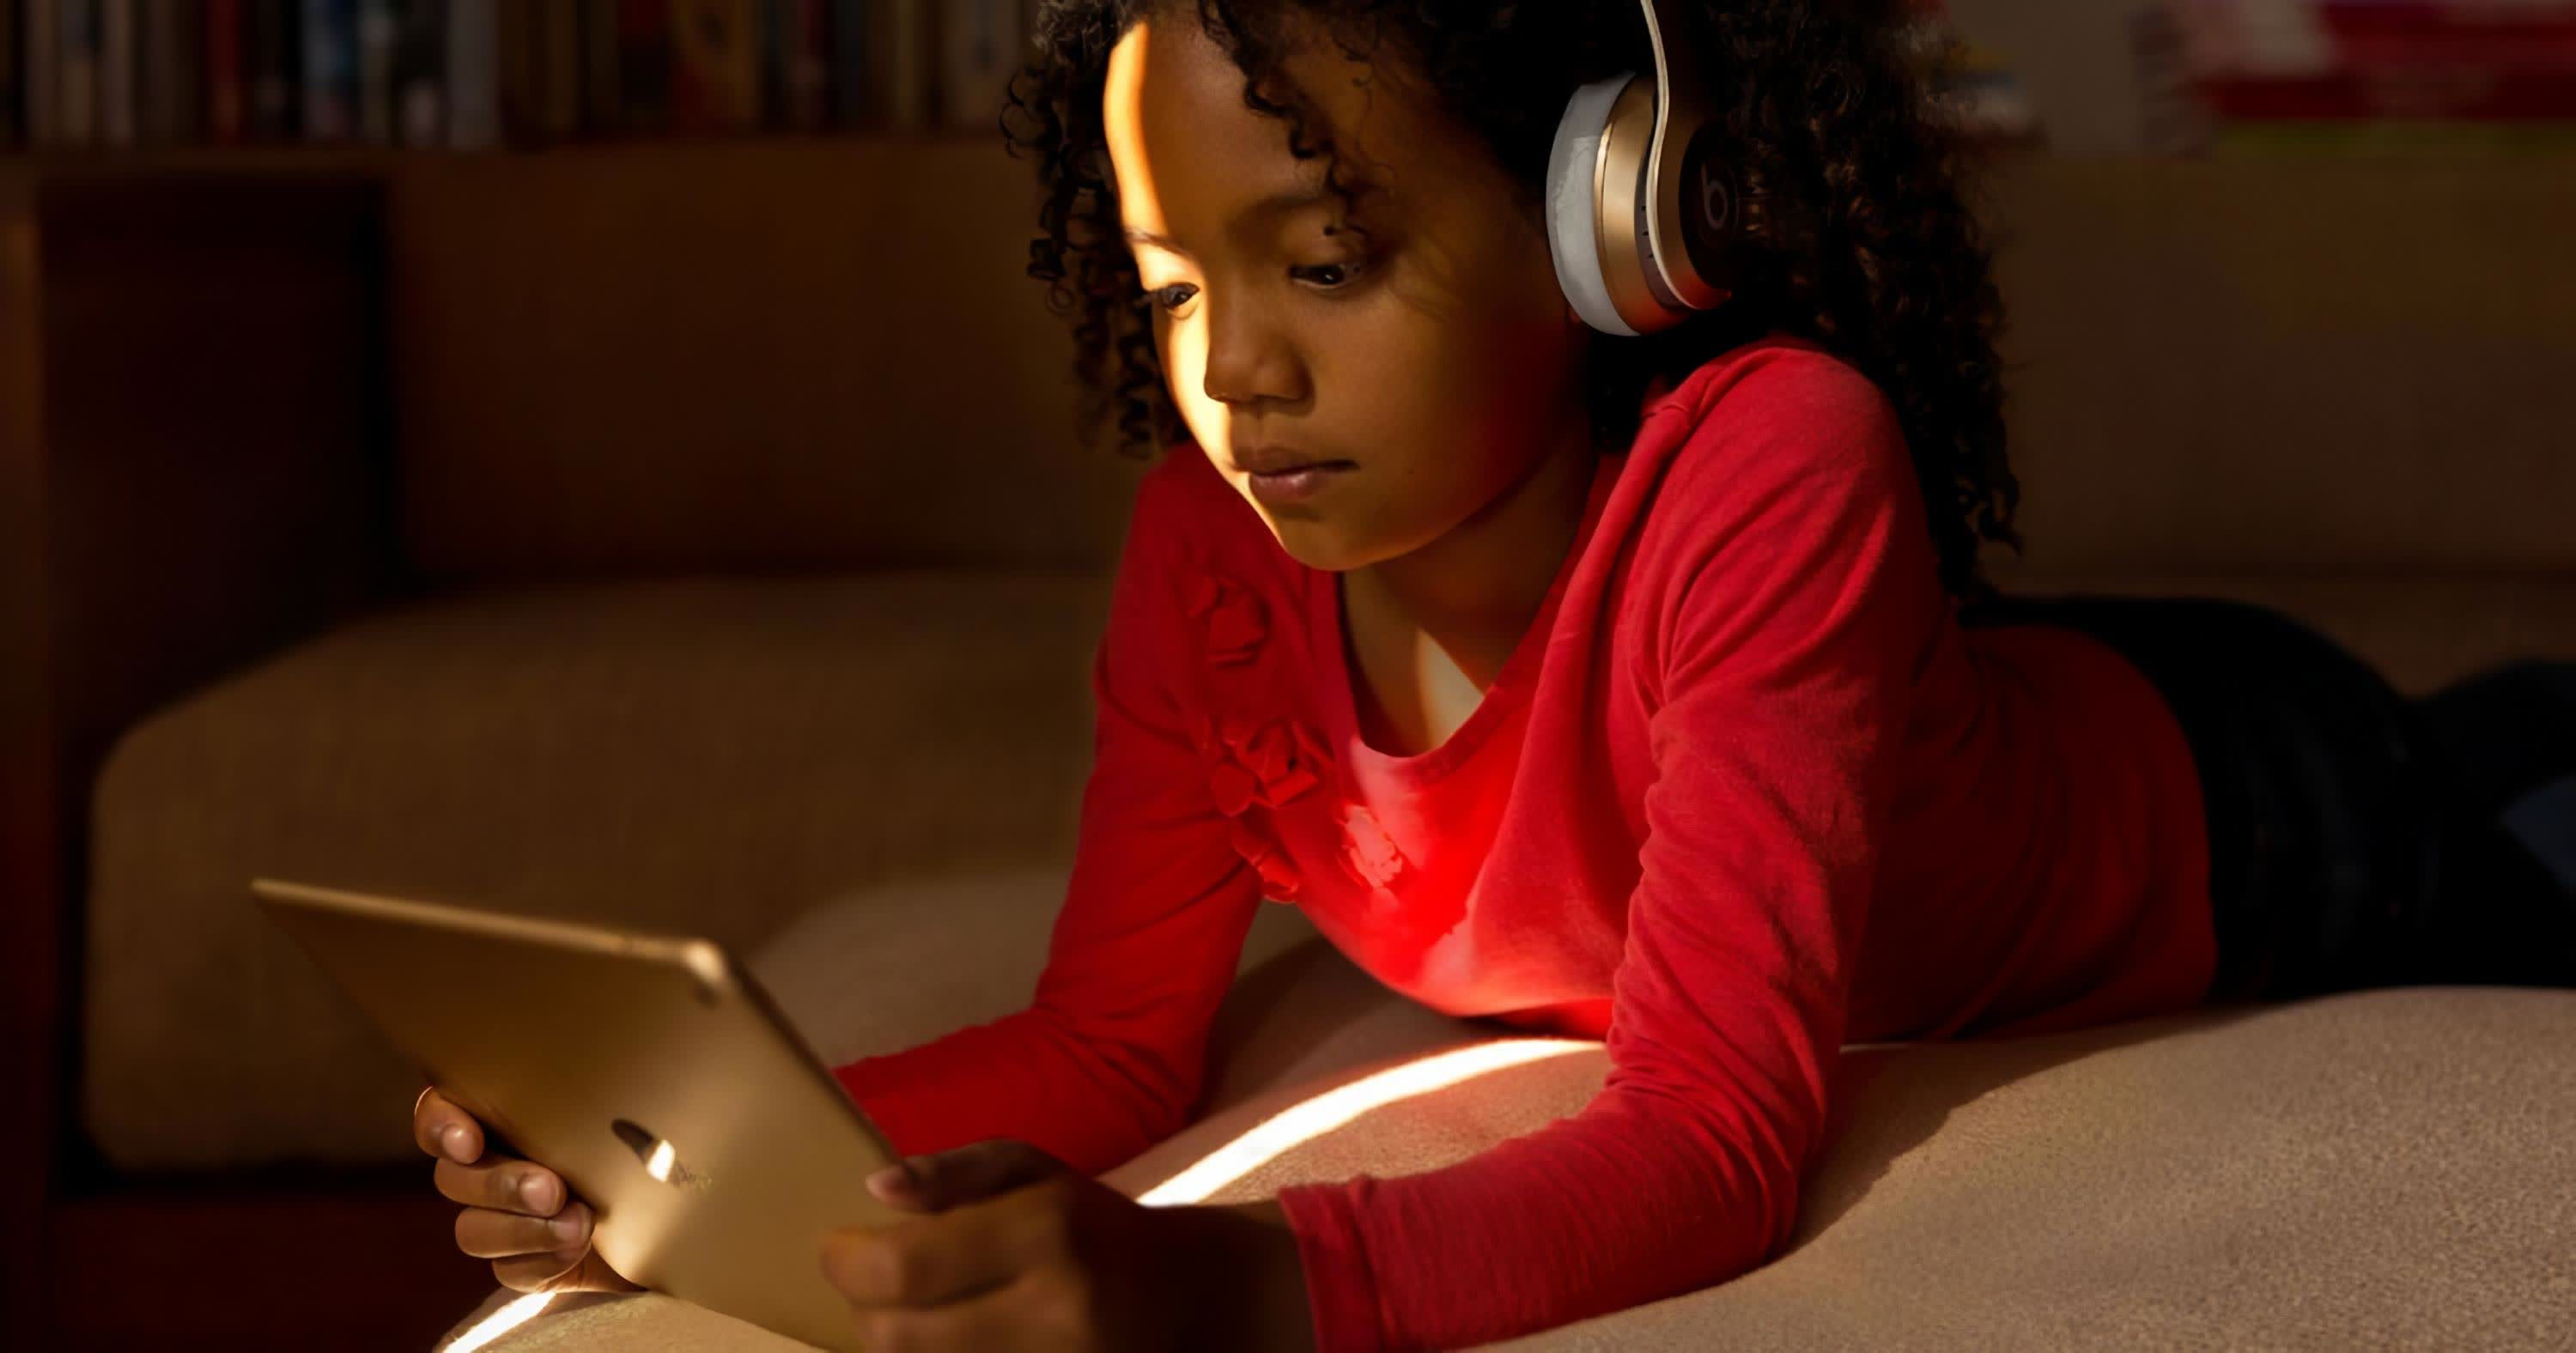 Apple partners with Common Sense Media to curate podcasts for kids